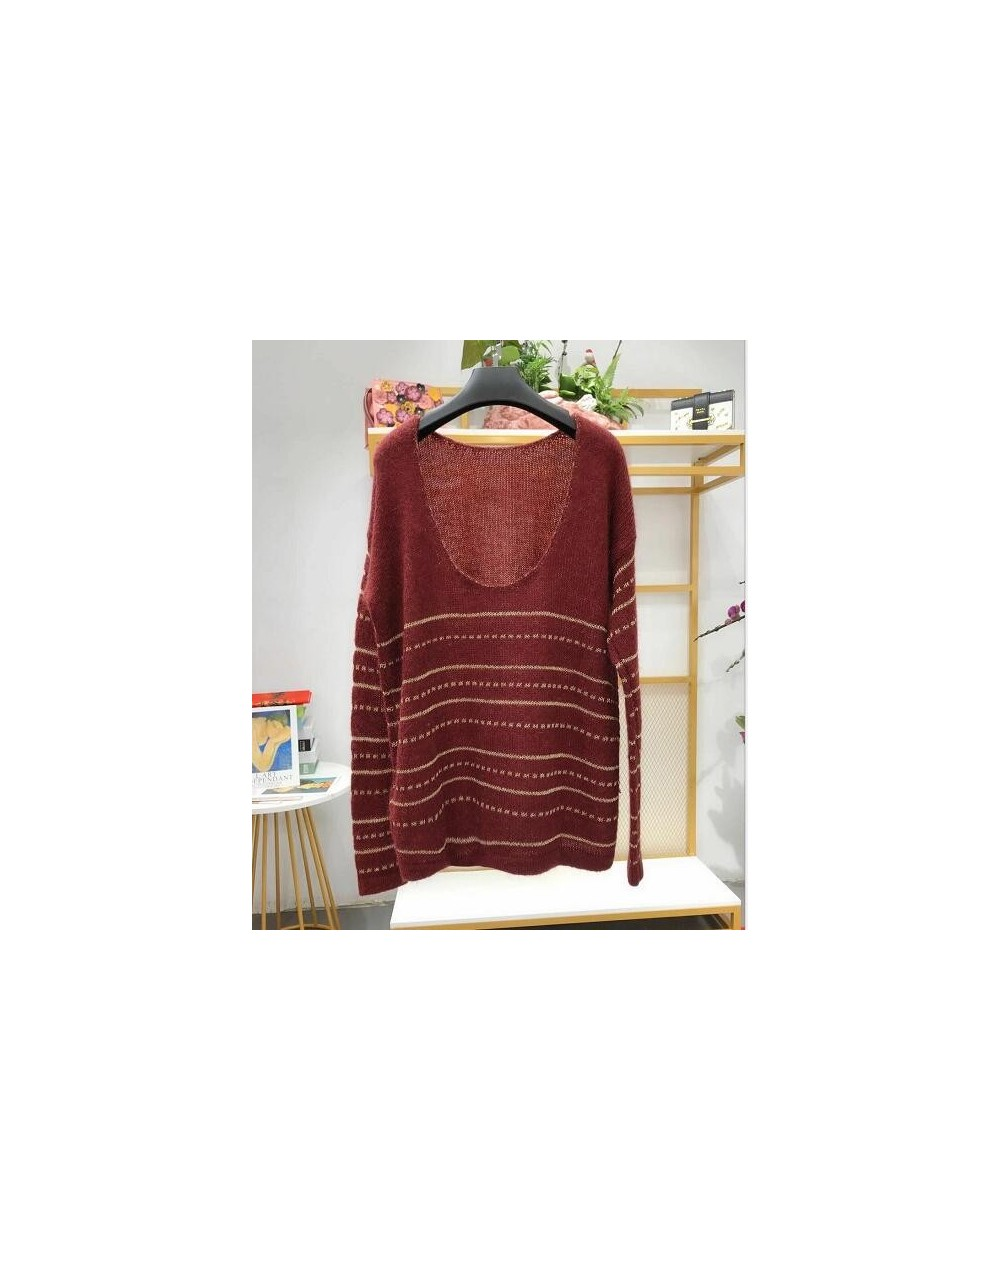 2019 New Women Striped Mohair Sweater Deep U Backless Sexy Gold Line Soft Pull Top - Red - 4A3090092500-2